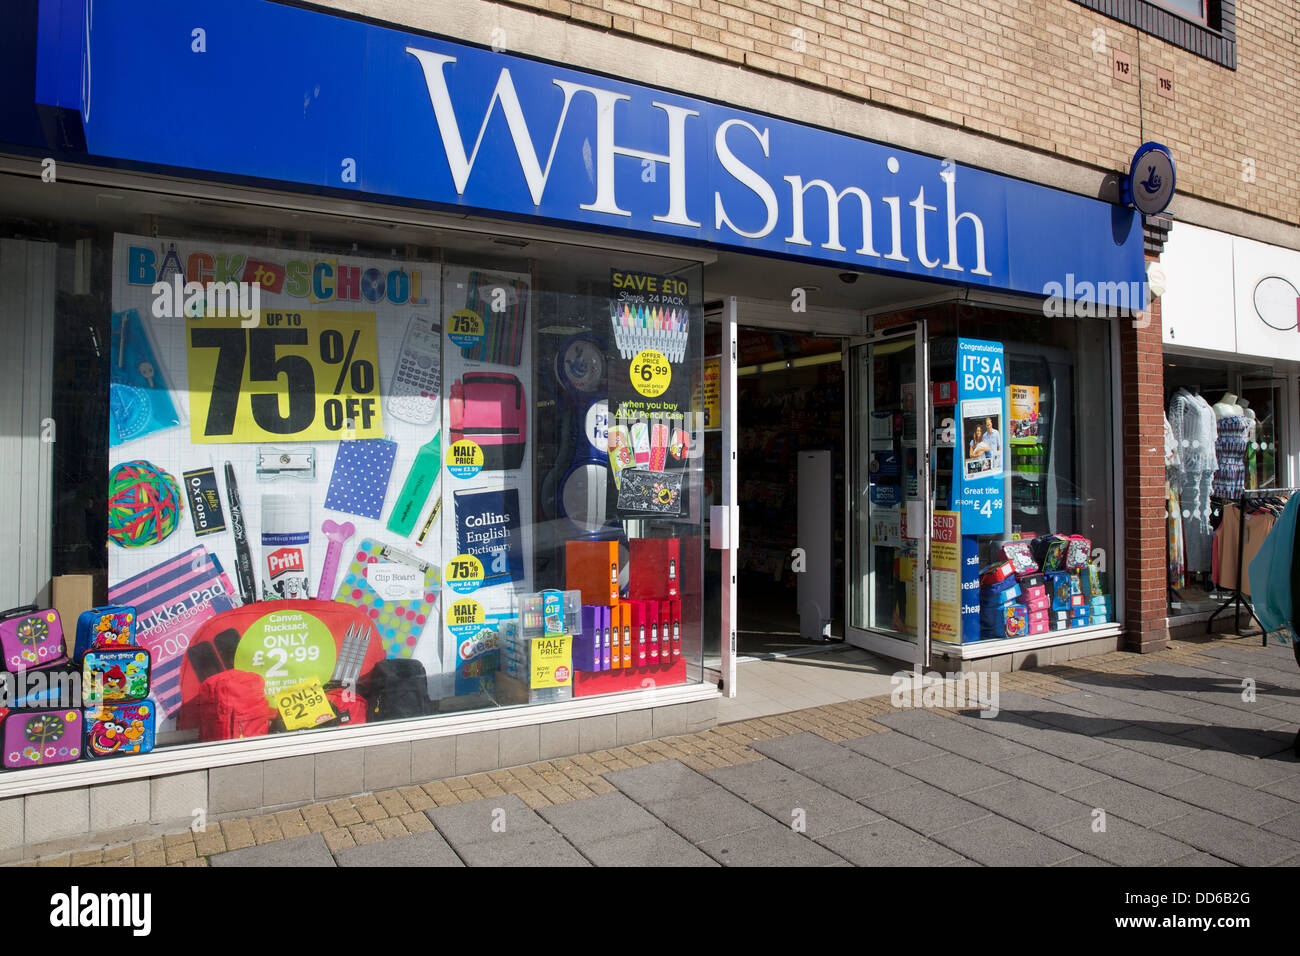 Wh Smith on High Street - Stock Image